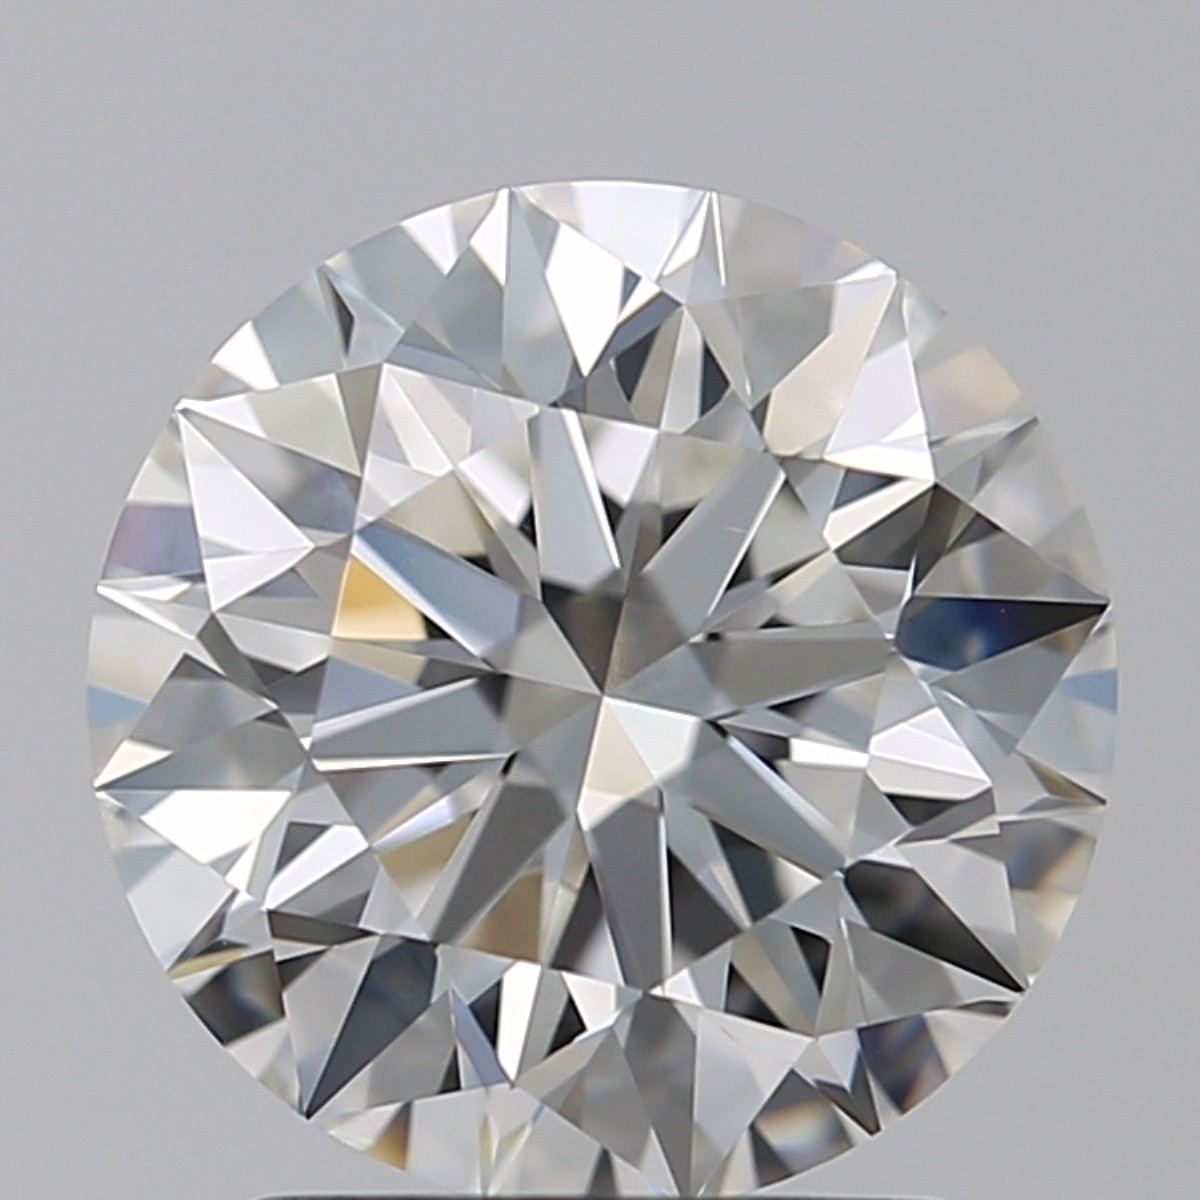 2.11 Carat Round Brilliant Diamond (G/VS1)